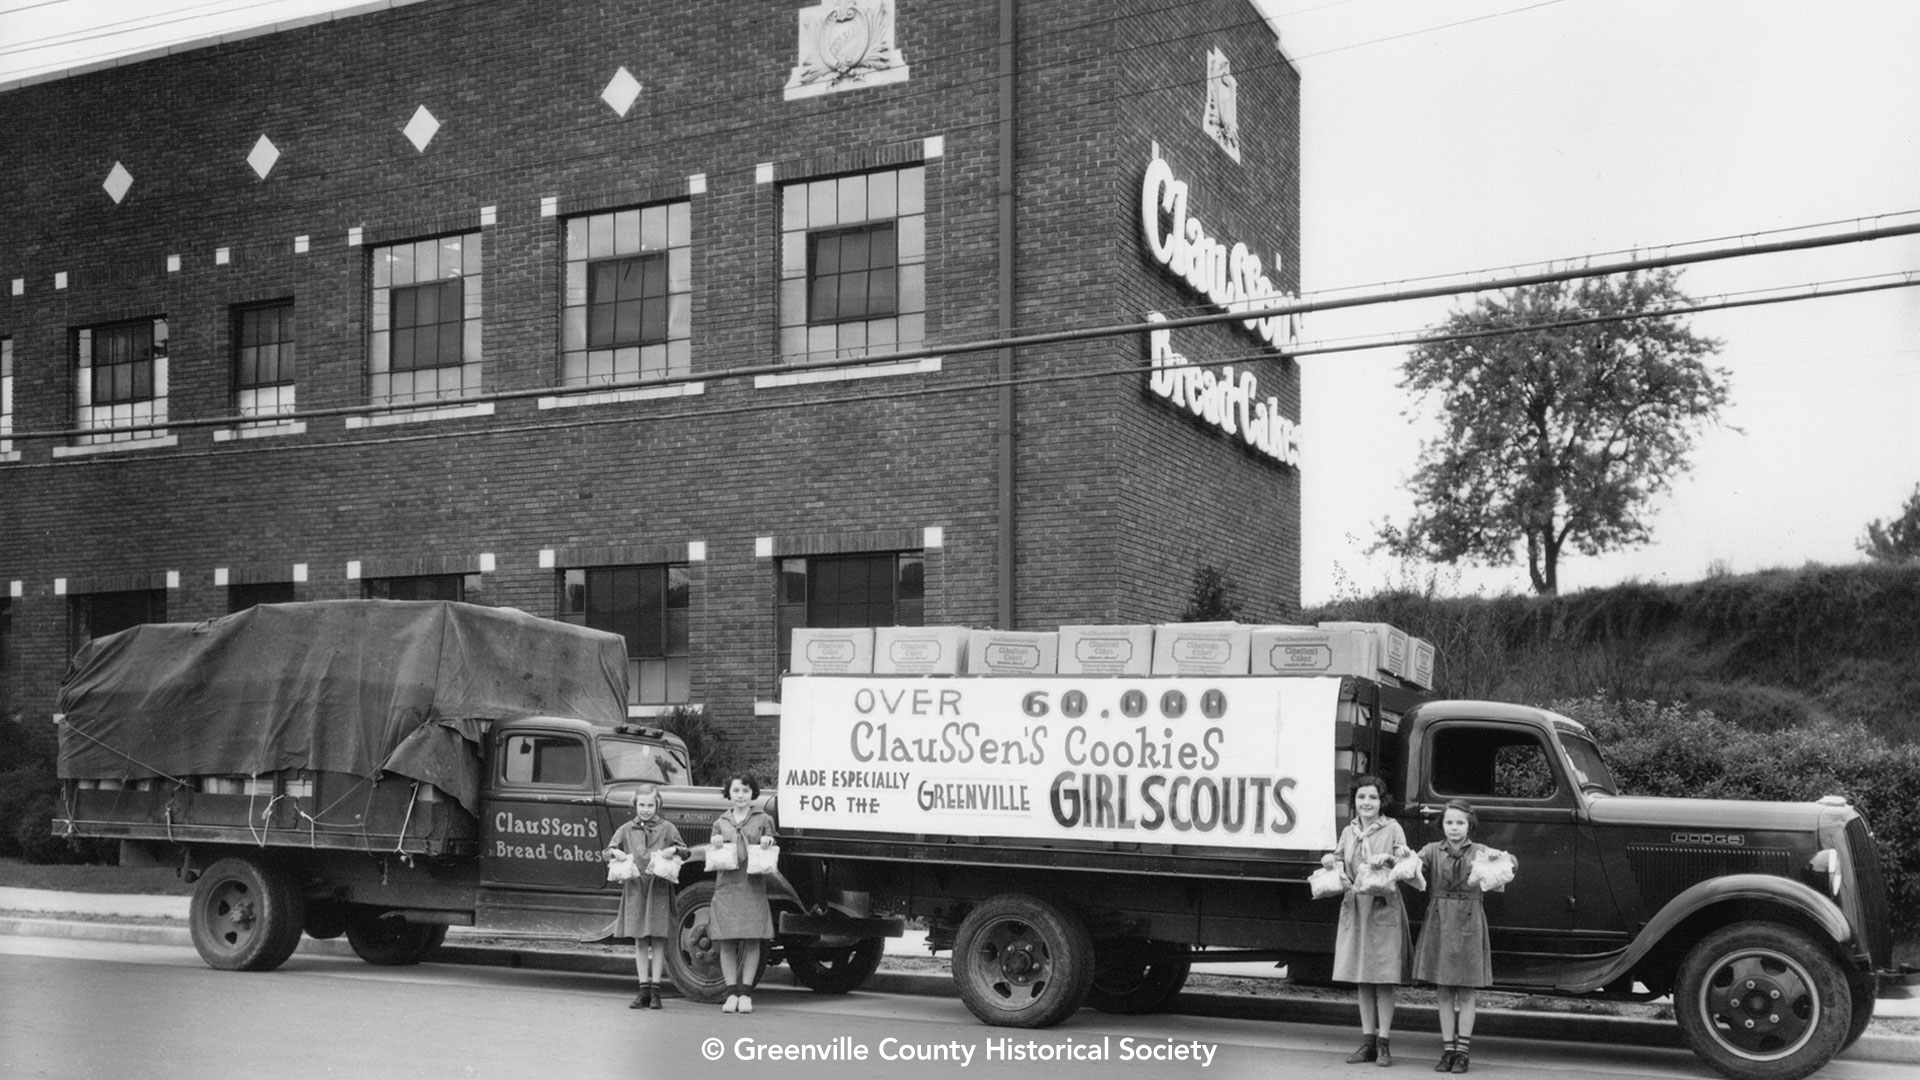 Historic photo of Girl Scouts selling cookies outside Claussen's Bakery